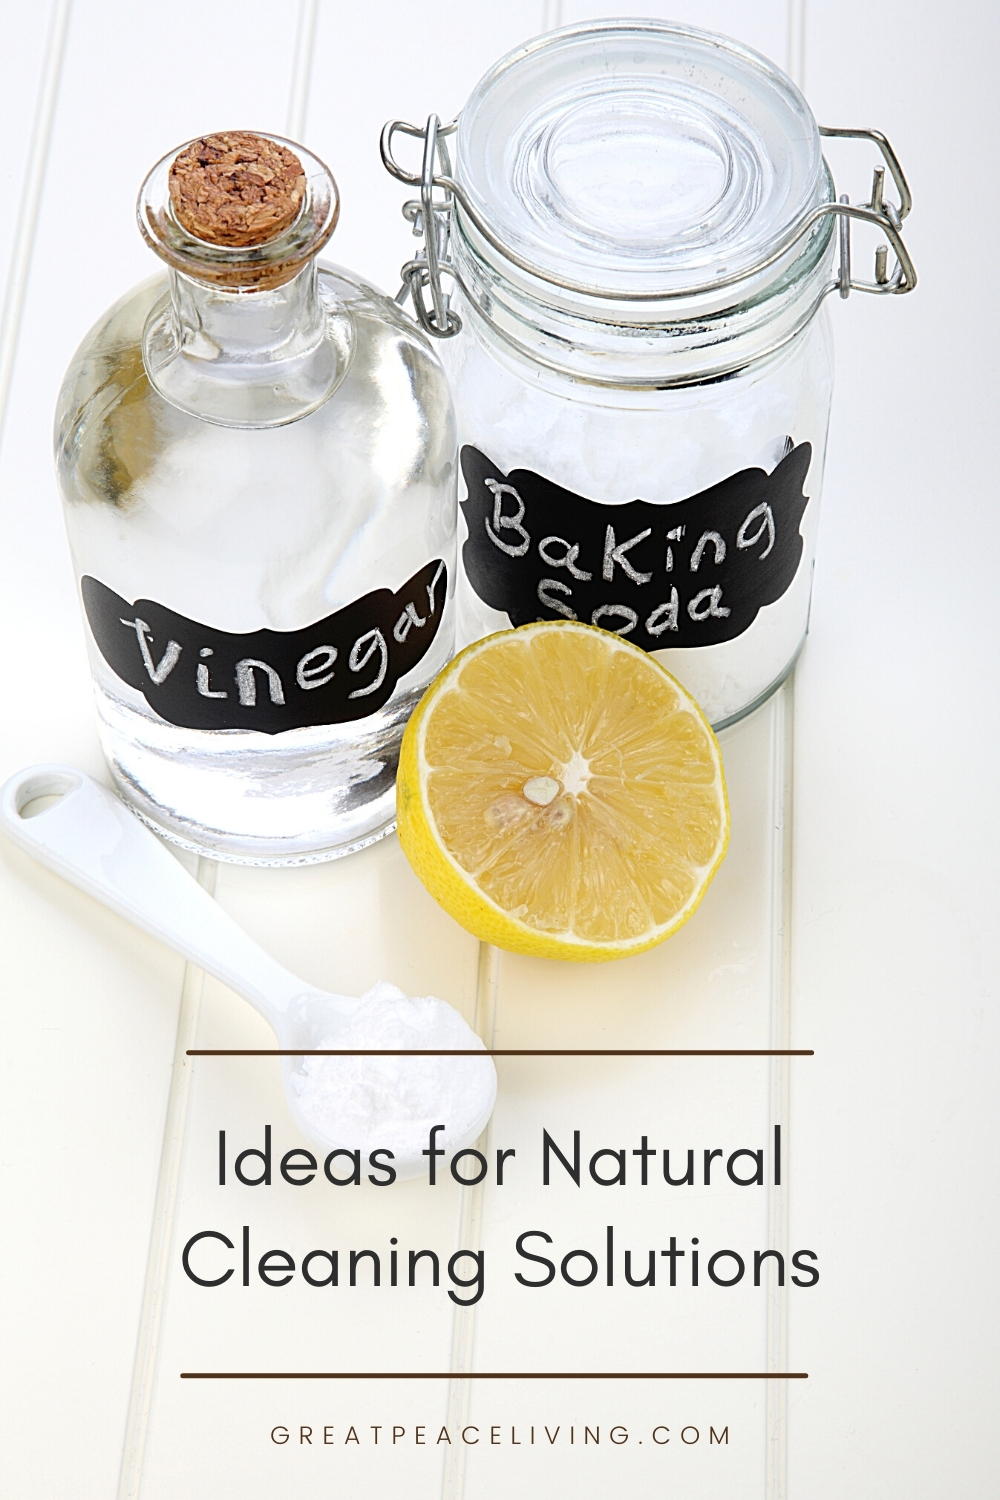 Ideas for Natural Cleaning Solutions | GreatPeaceLiving.com